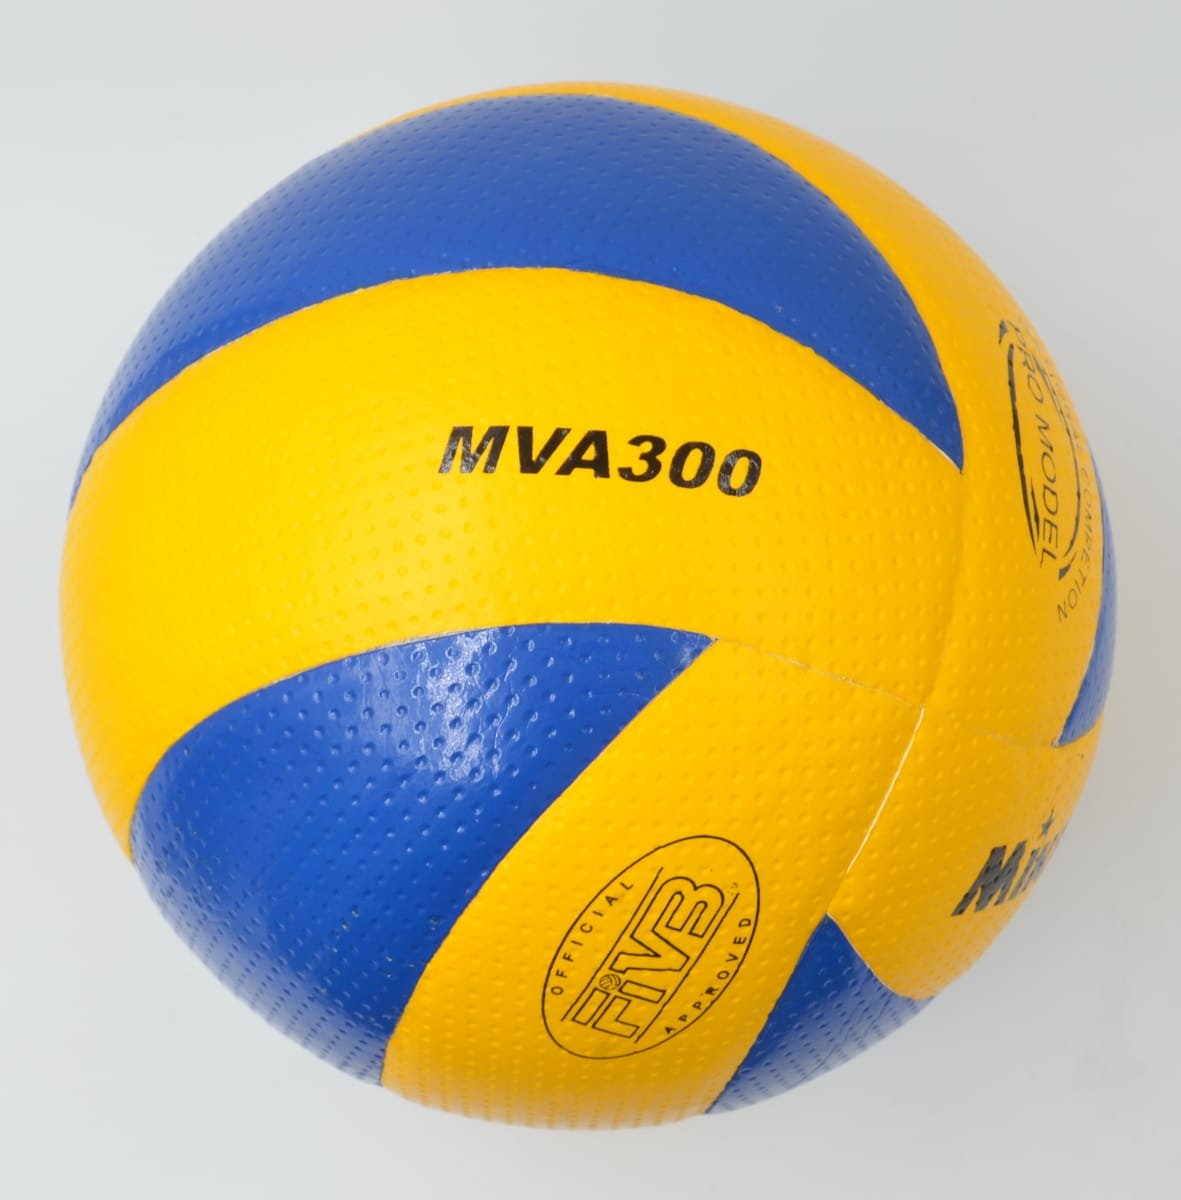 MIKASA MVA300 Official FIVB Approved Volleyball Game Ball size 5